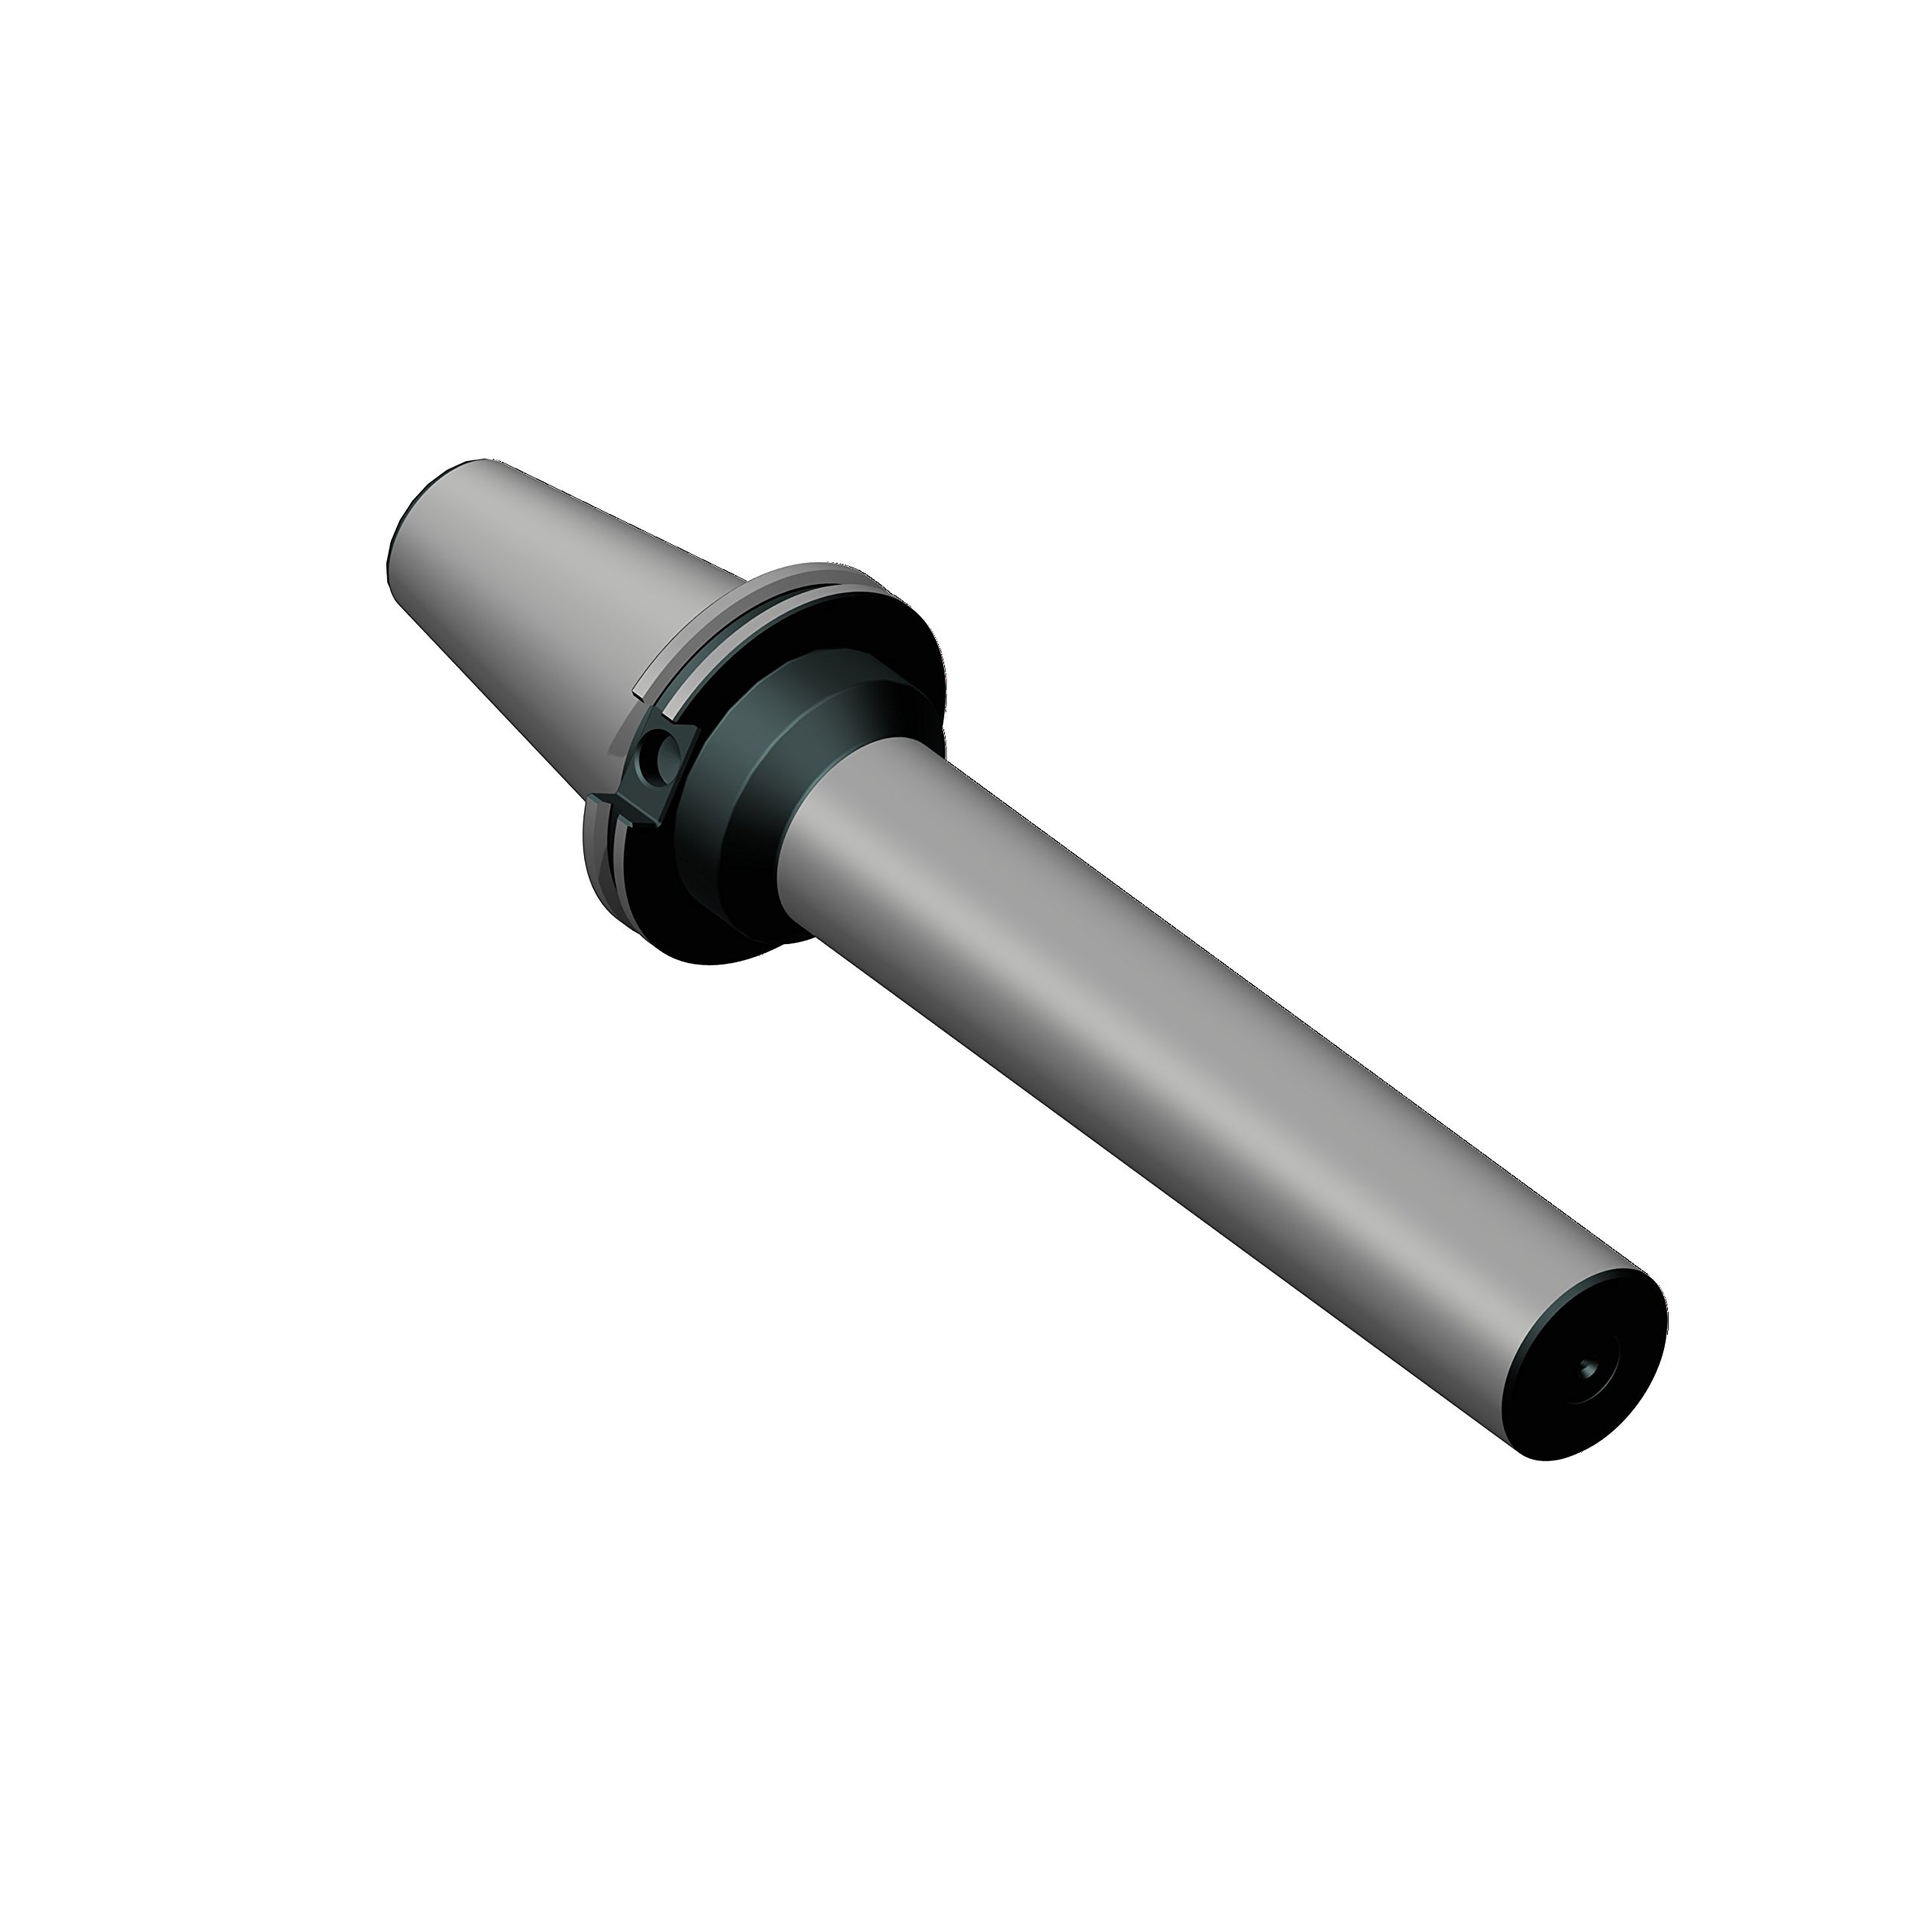 Briney Tooling Systems V50PTB-200-1200 Cat50 Precision Test Bar, 2'' Diameter, 12'' Projection